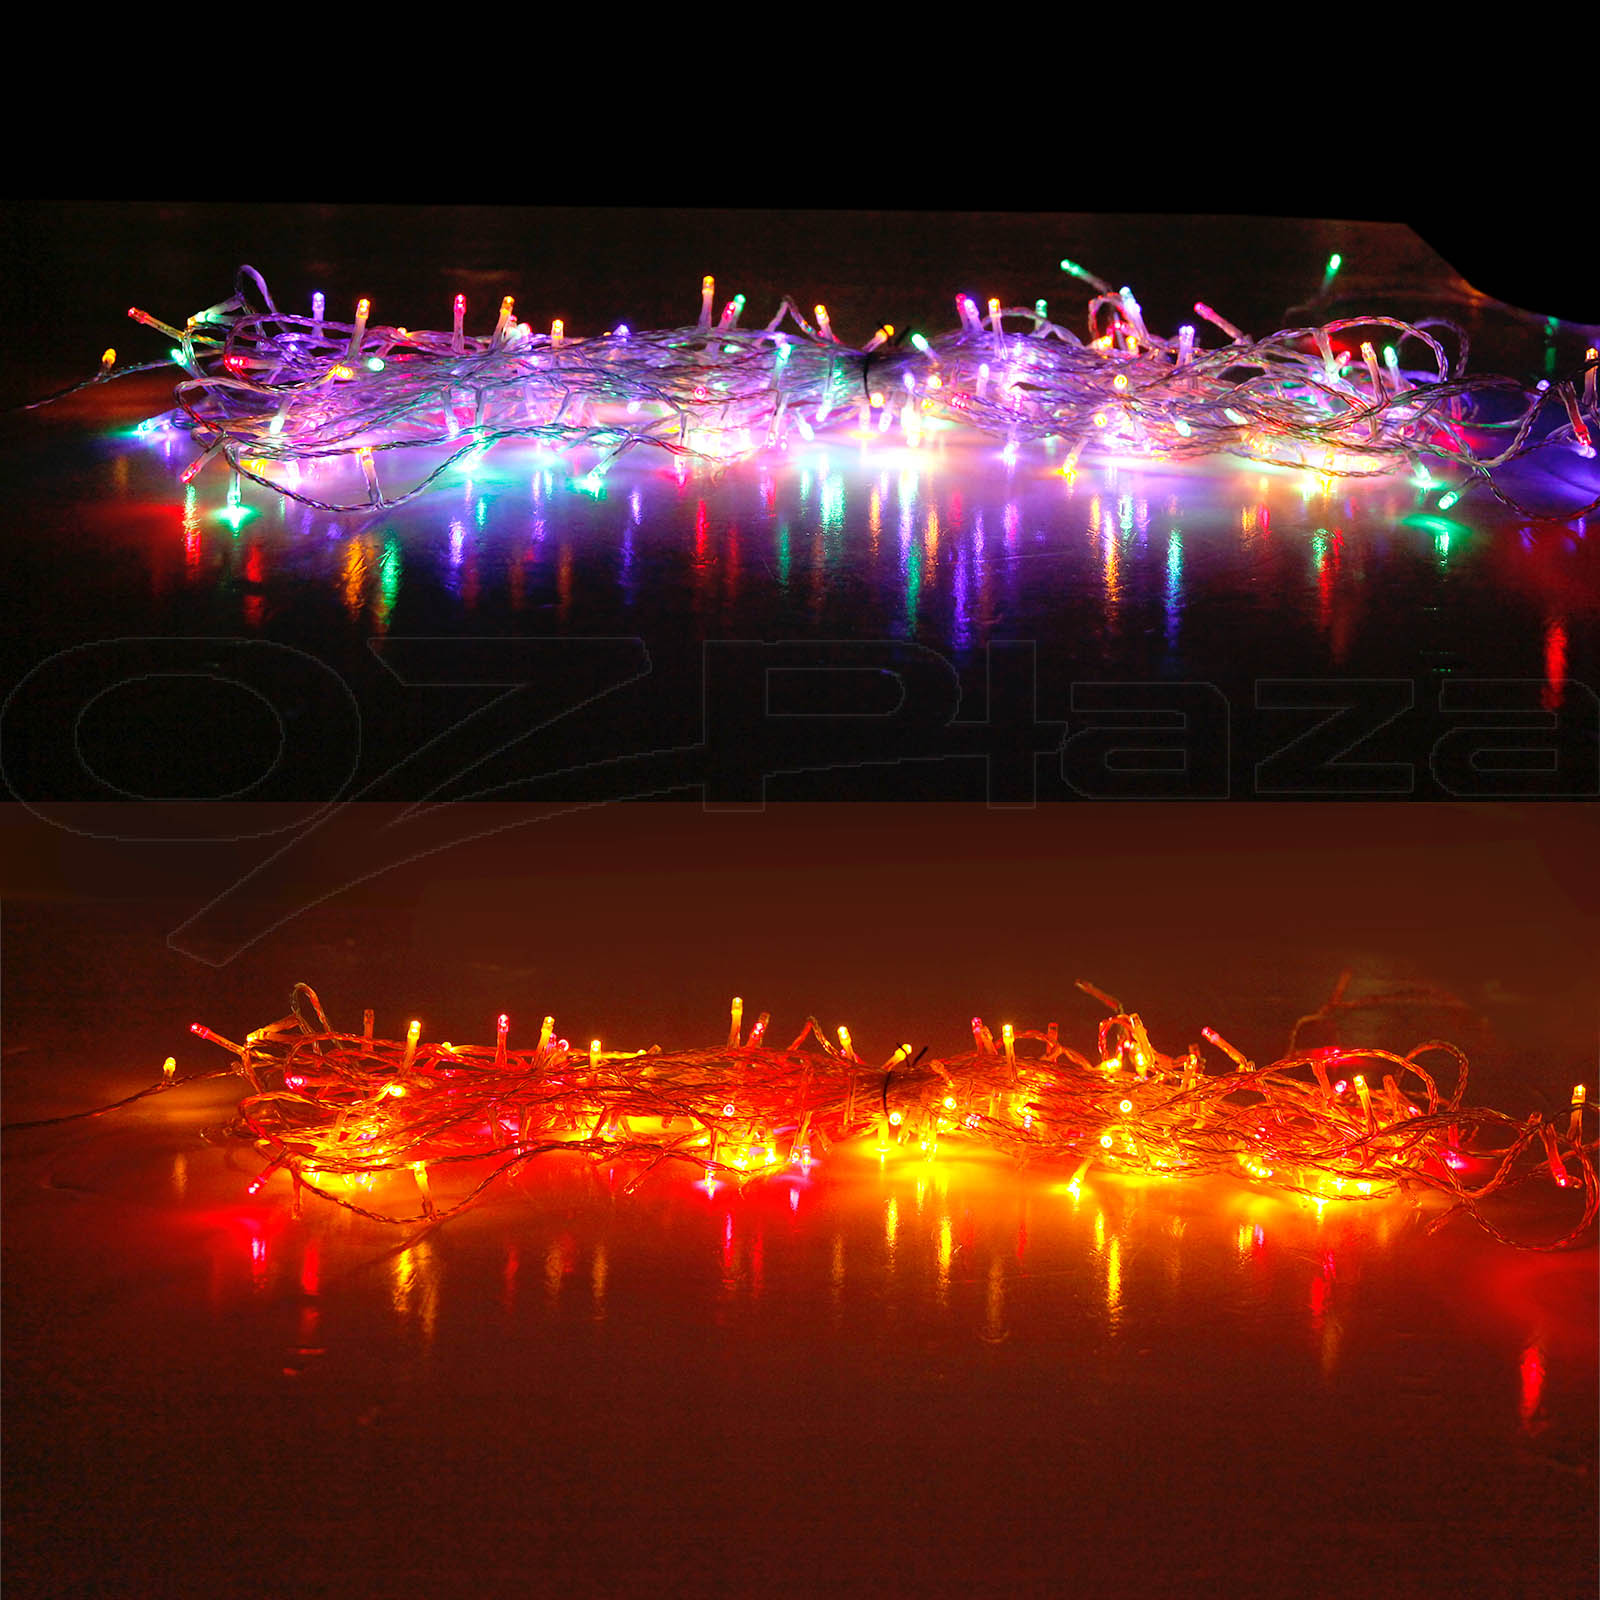 Outdoor String Lights In Bulk : 800 LED Christmas String Lights Decorations Outdoor Fair Party Wedding Lighting eBay